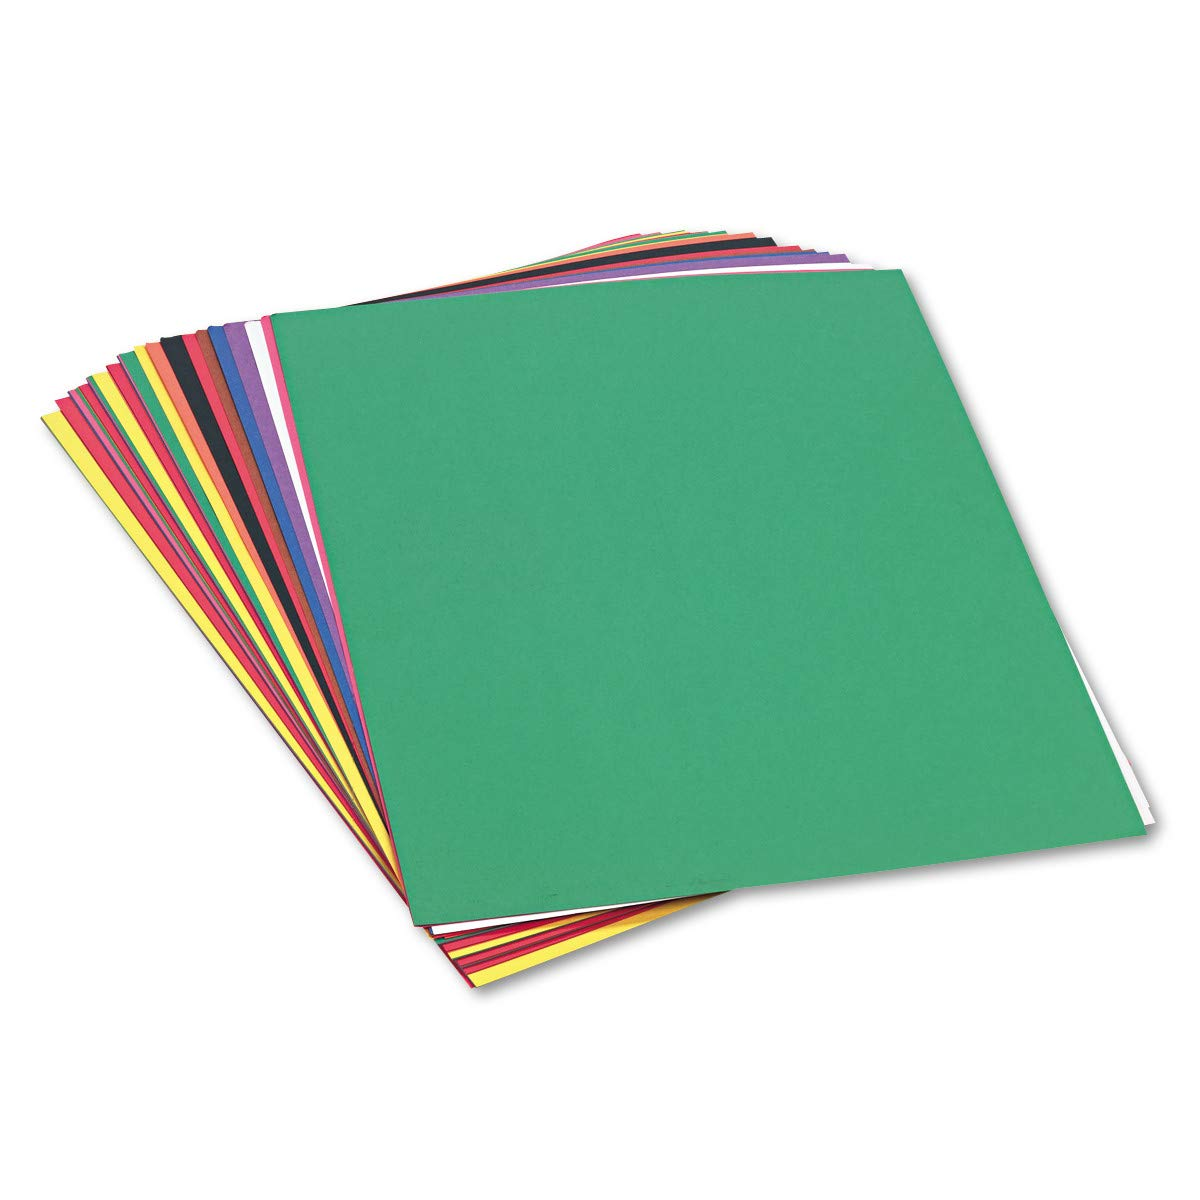 SunWorks Construction Paper, 58 lbs., 18 x 24, Assorted, 50 Sheets/Pack